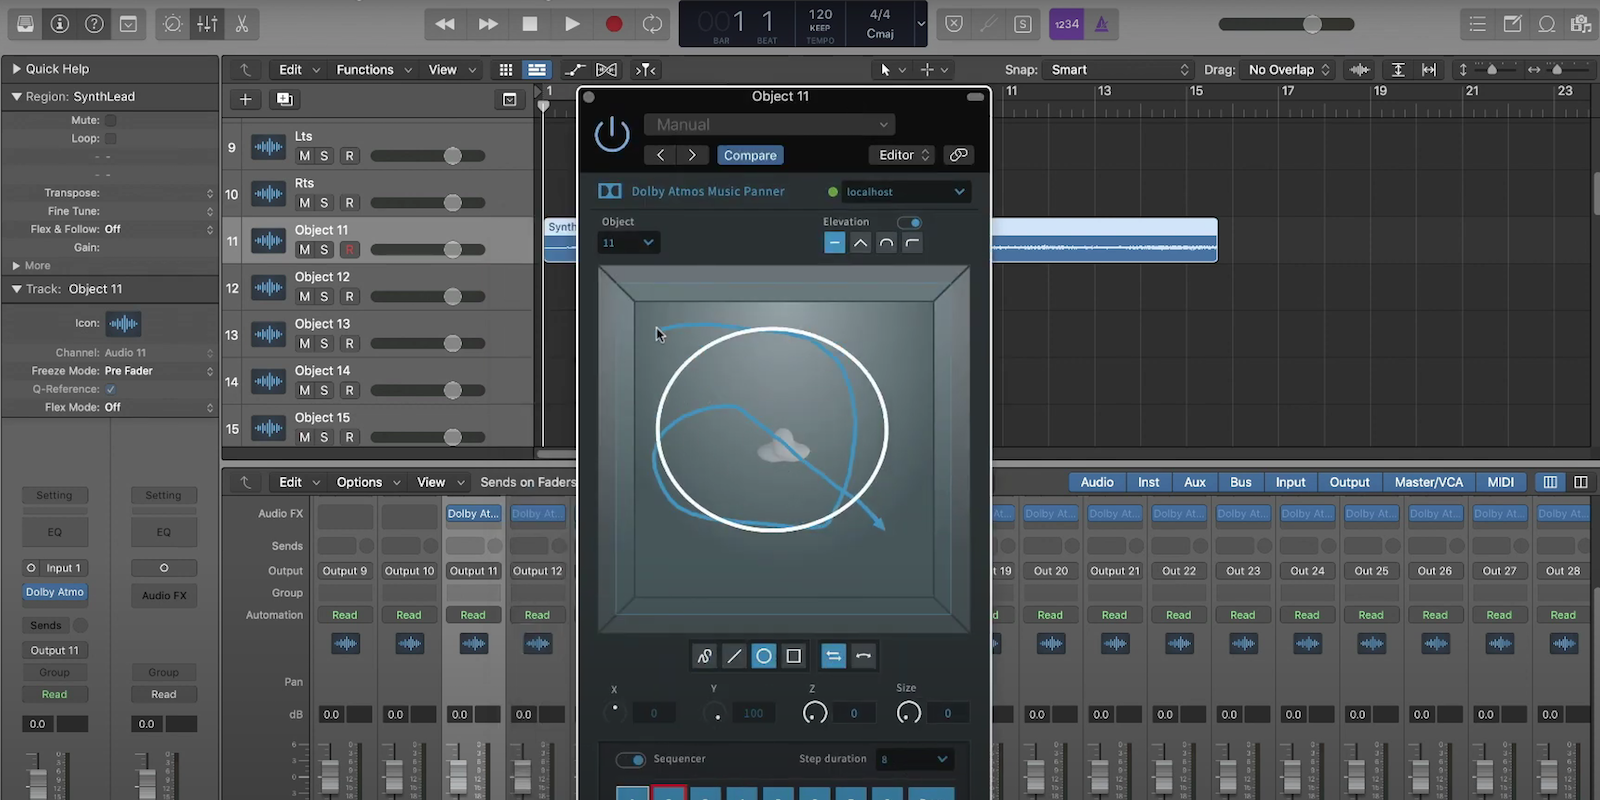 Spatial Audio for indie artists Dolby Atmos and how to prepare your music for Spatial Audio and Lossless